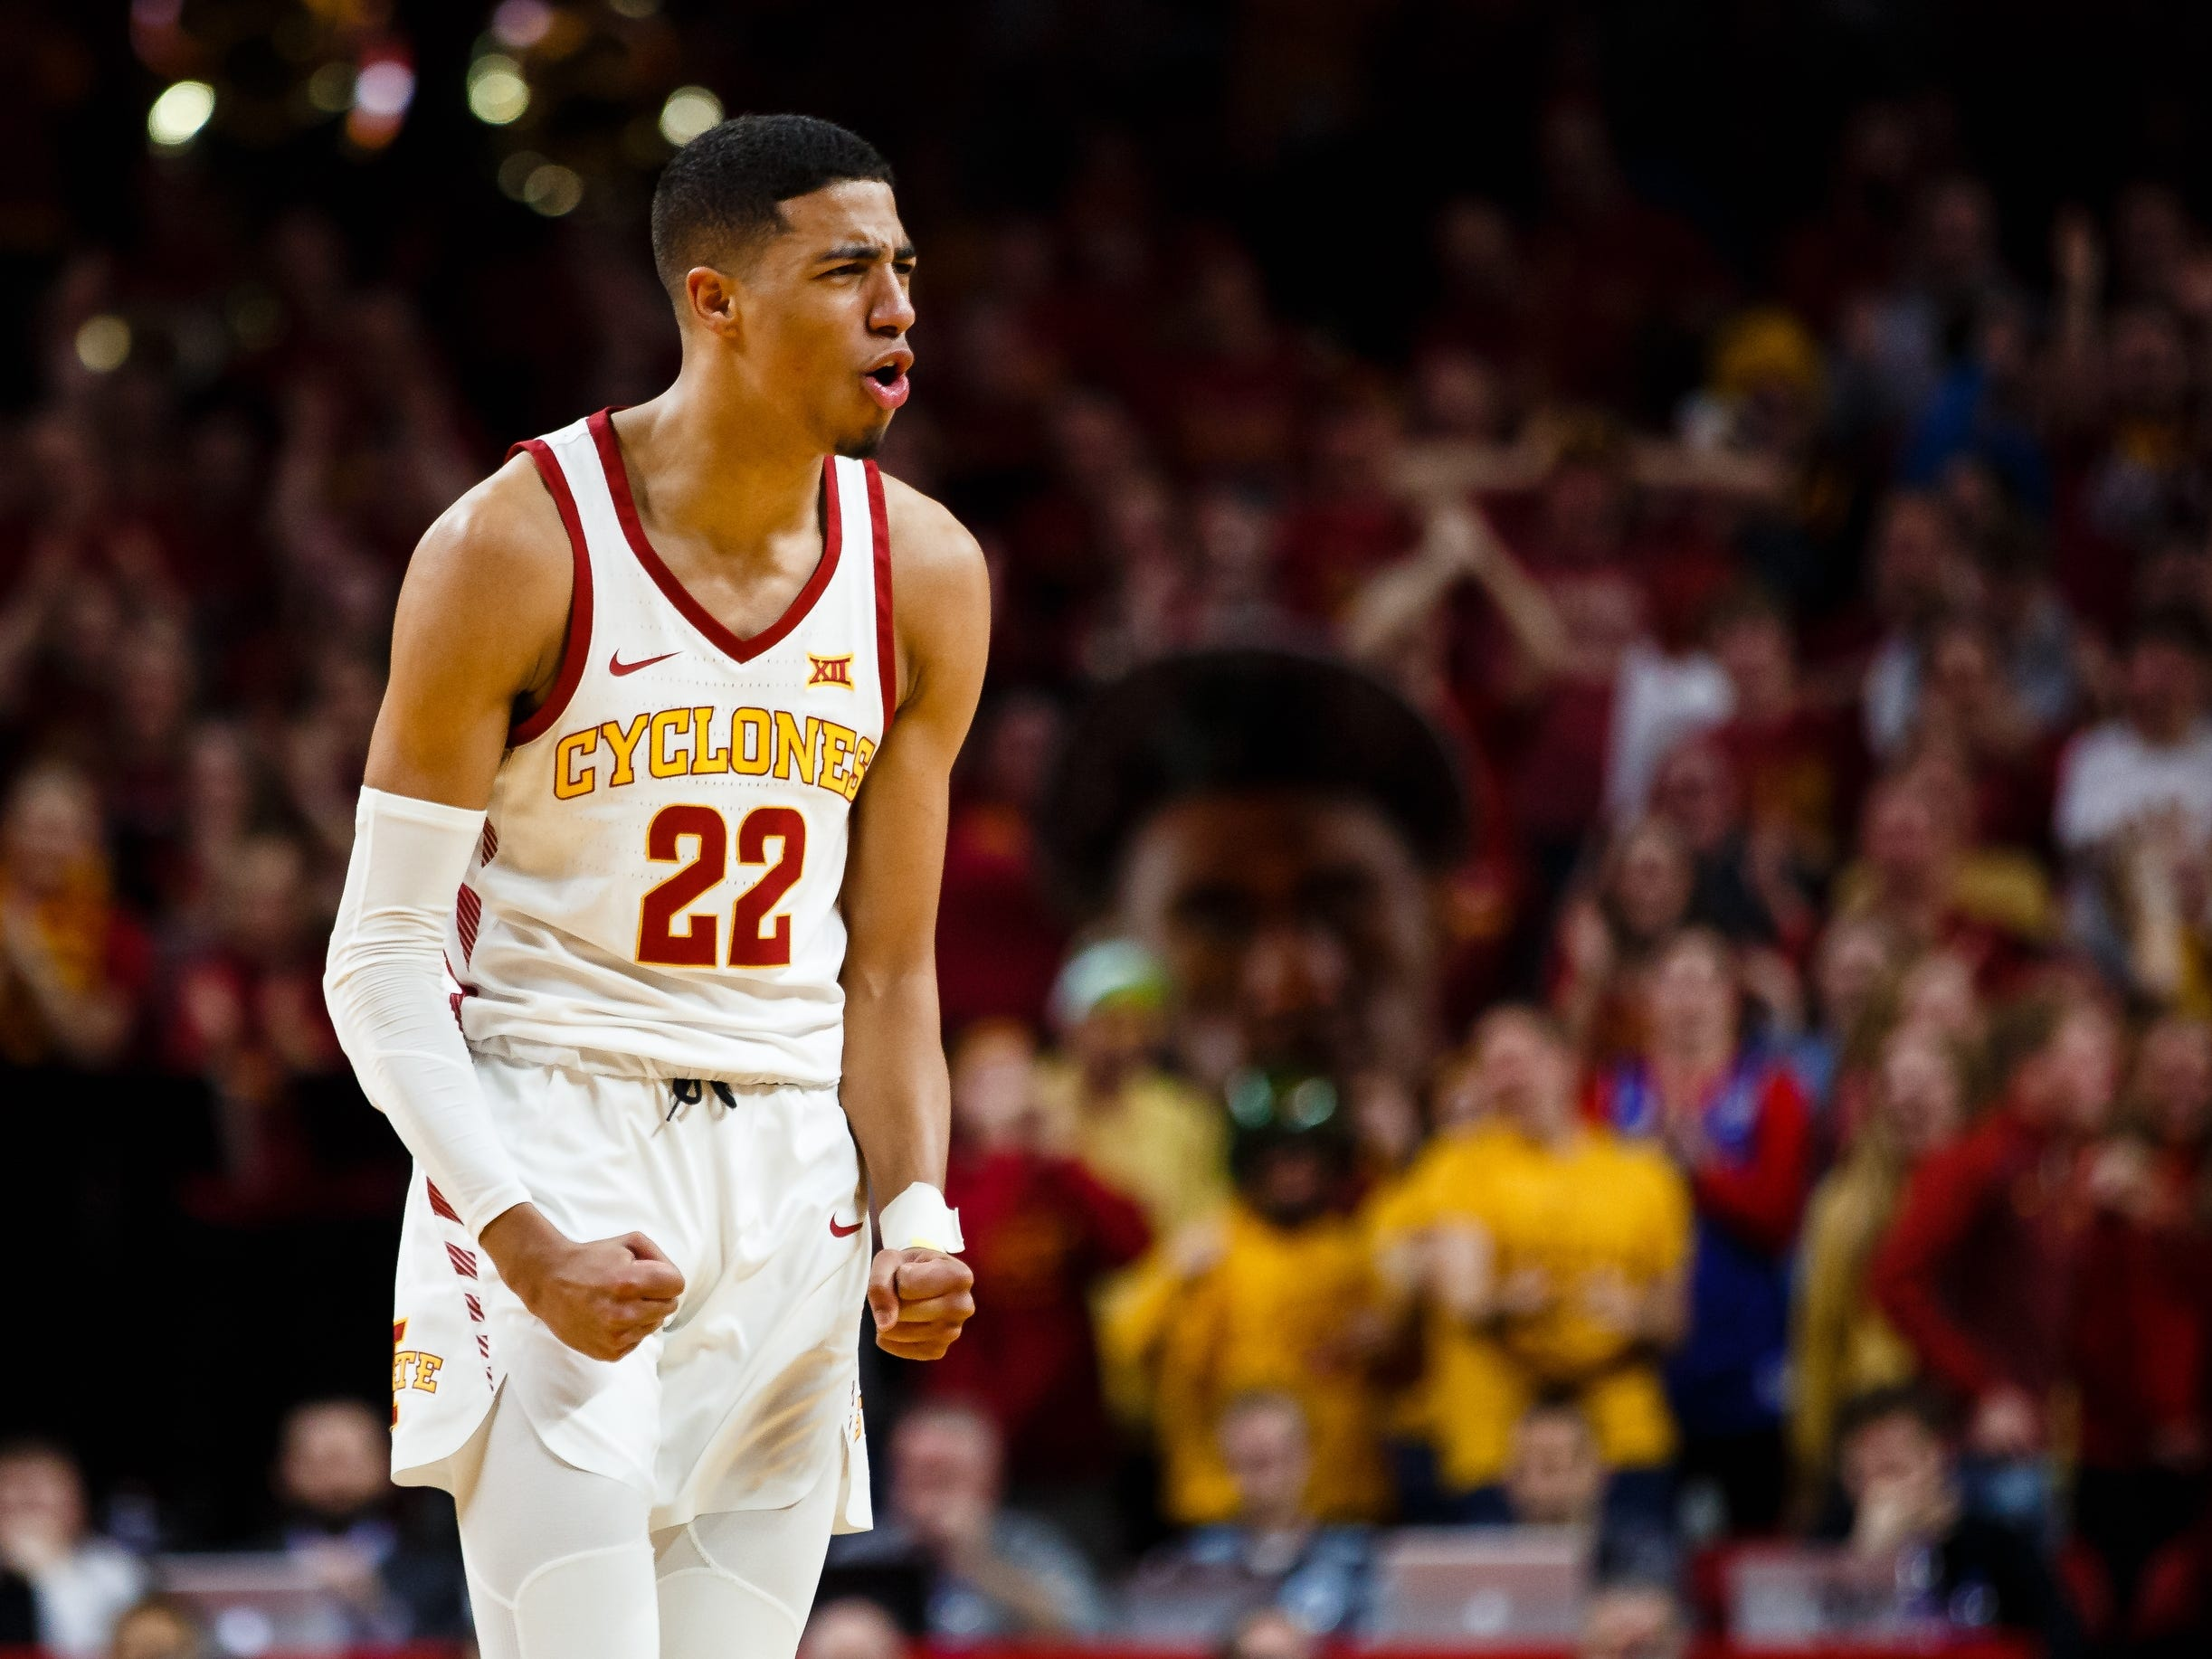 Iowa State's Tyrese Haliburton (22) celebrates during the second half of their basketball game on Saturday, Jan. 5, 2019, in Ames. Iowa State would go on to beat Kansas 77-60.